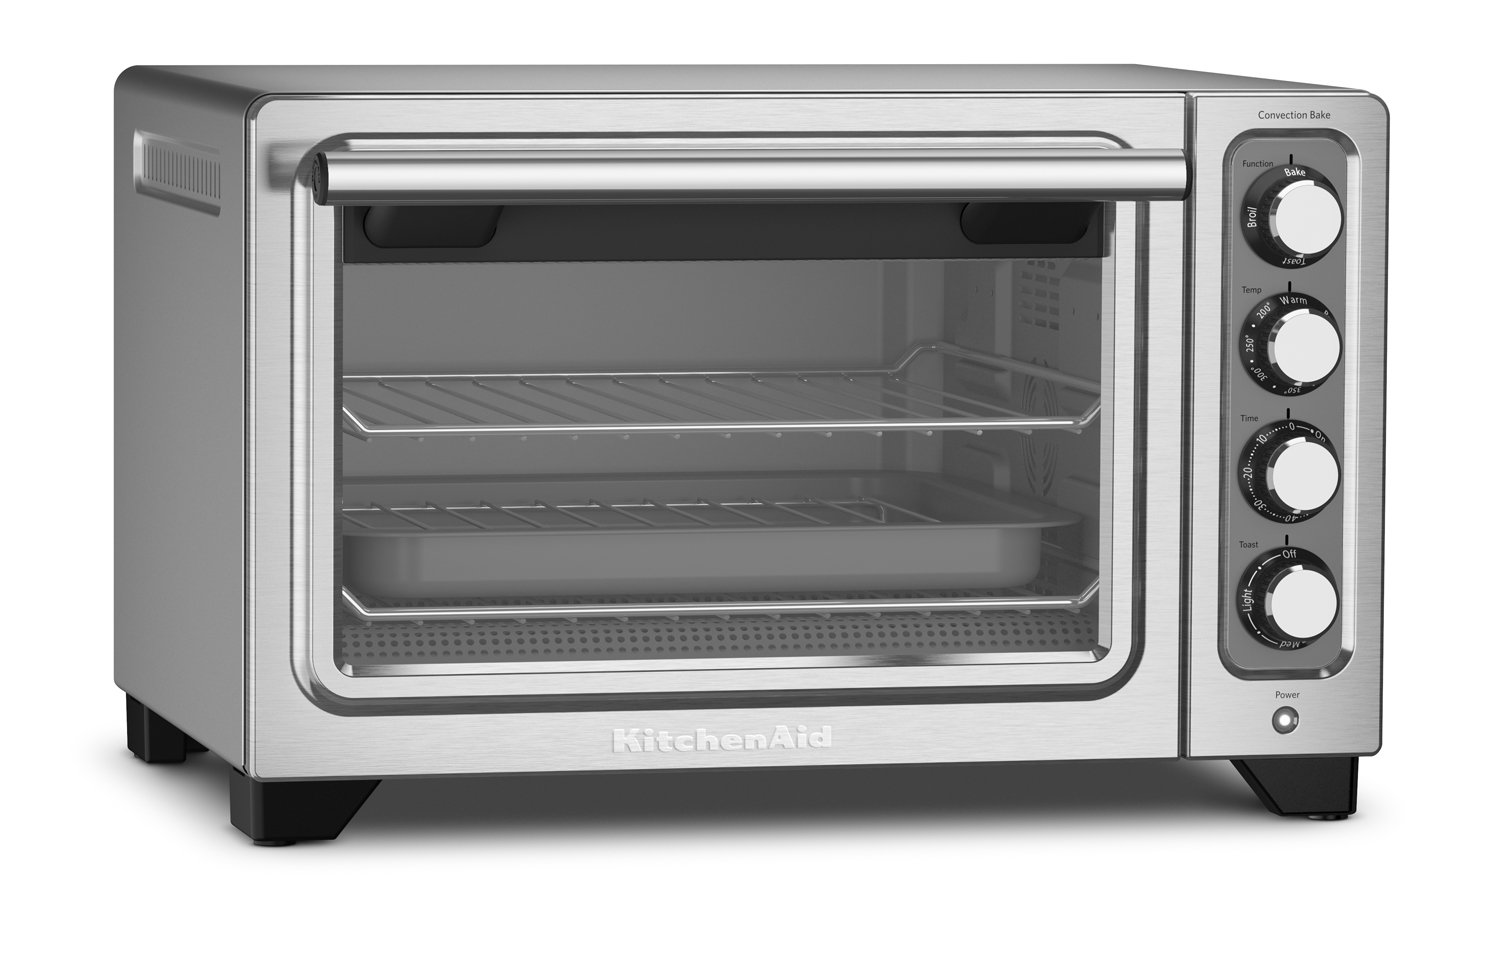 lg signature lgsignature double usa cooking large us slide appliances gas gallery in oven kitchen range